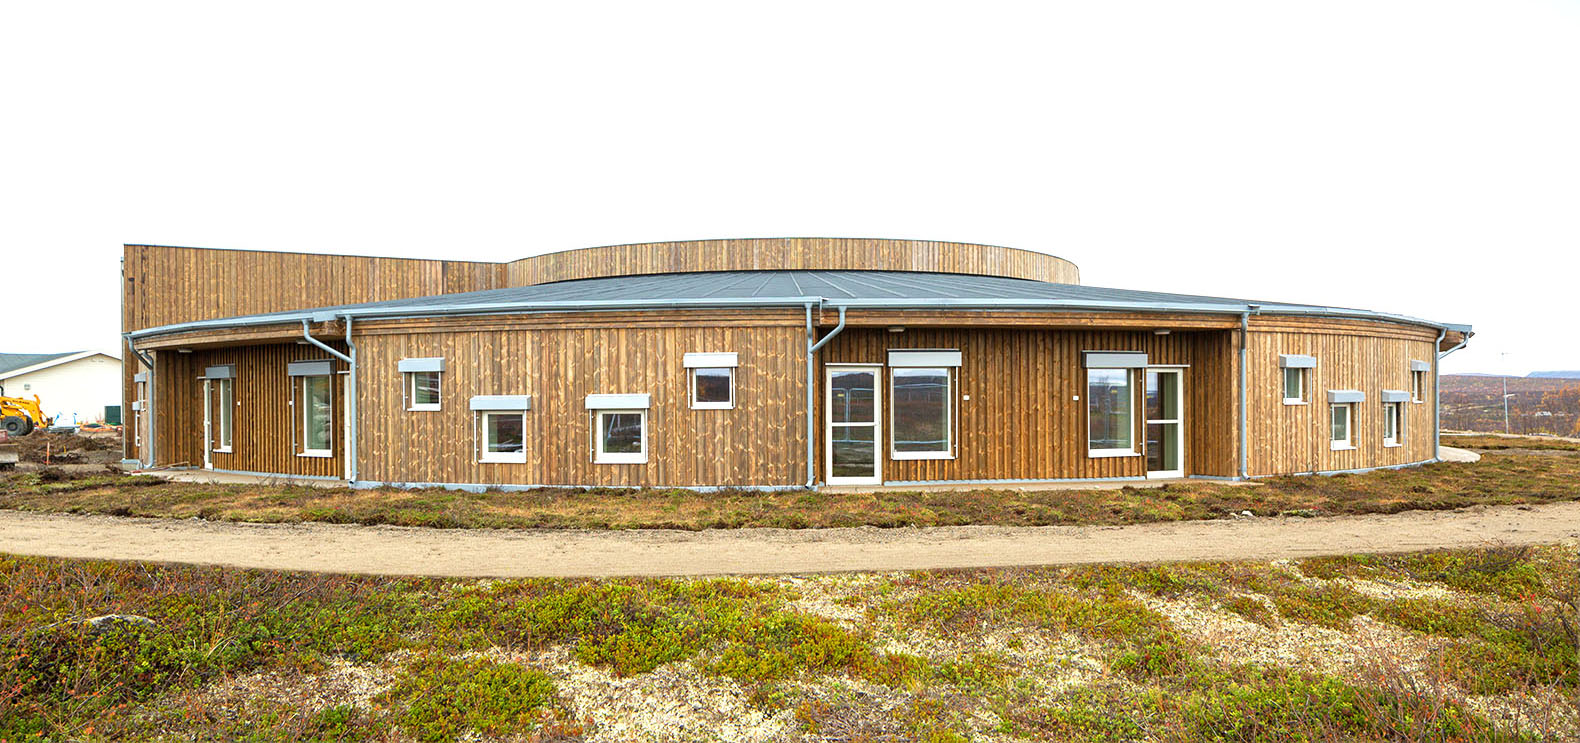 Remarkable Arctic Circle home care center achieves Norway's highest  efficiency standards